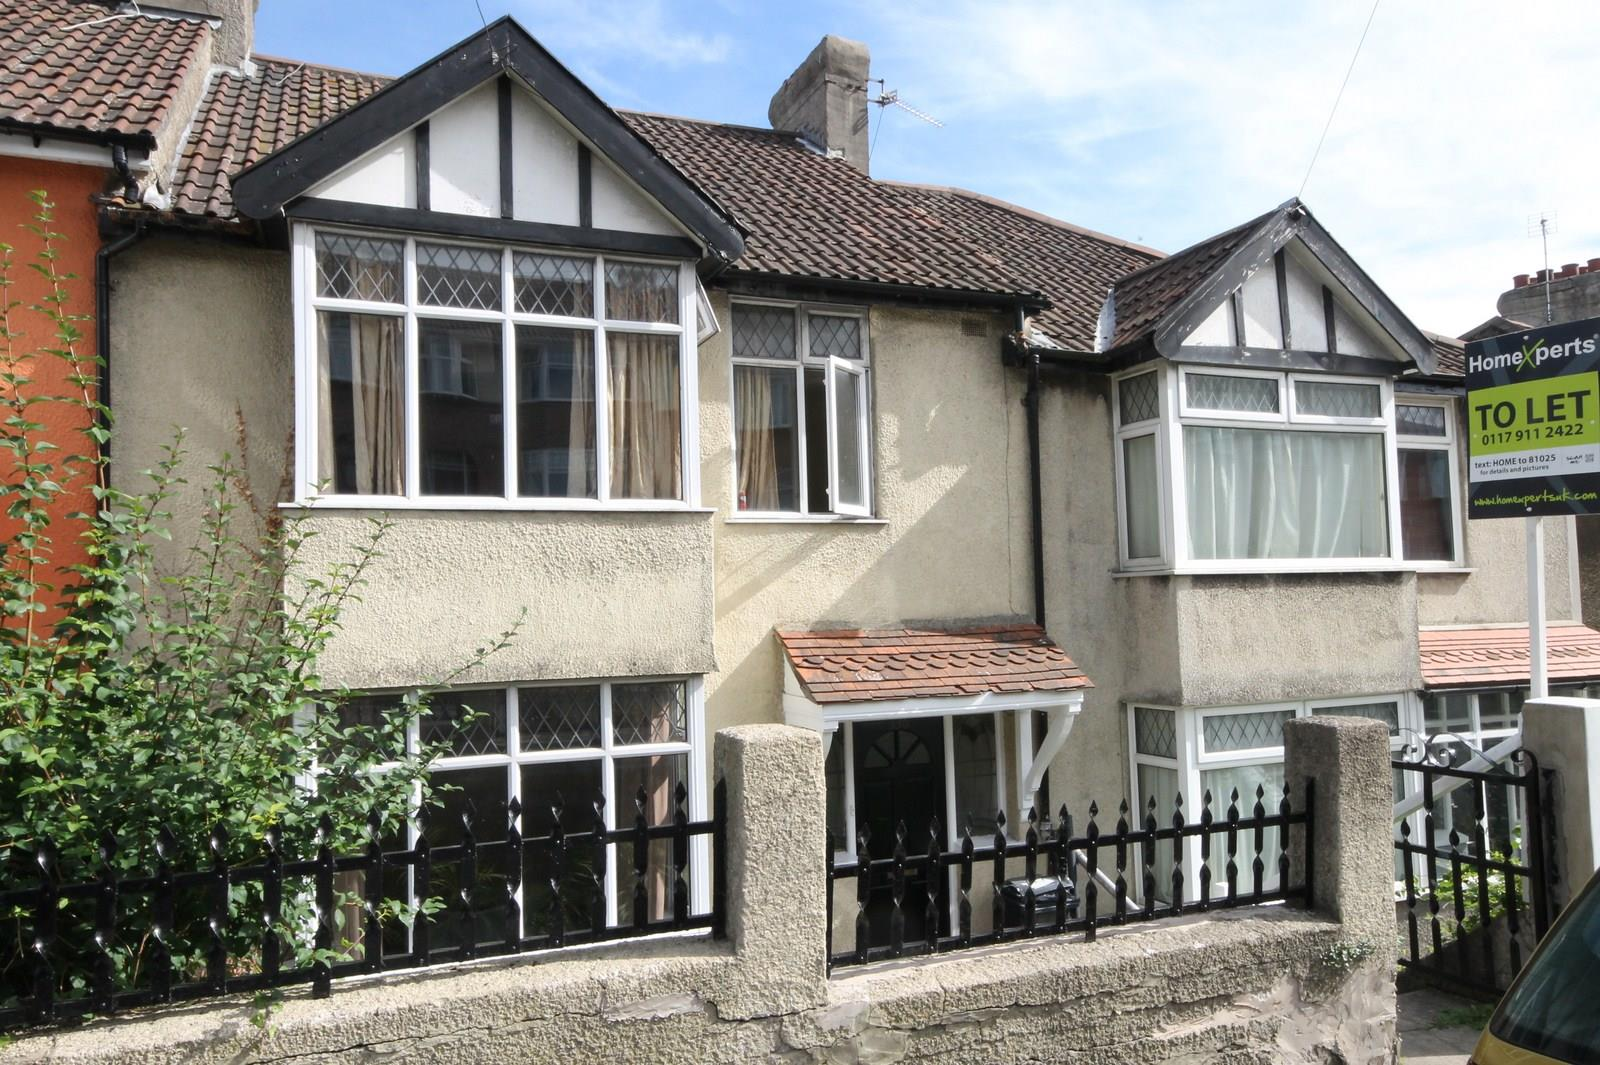 3 bed house to rent in Ashley Down Road, Bristol 0